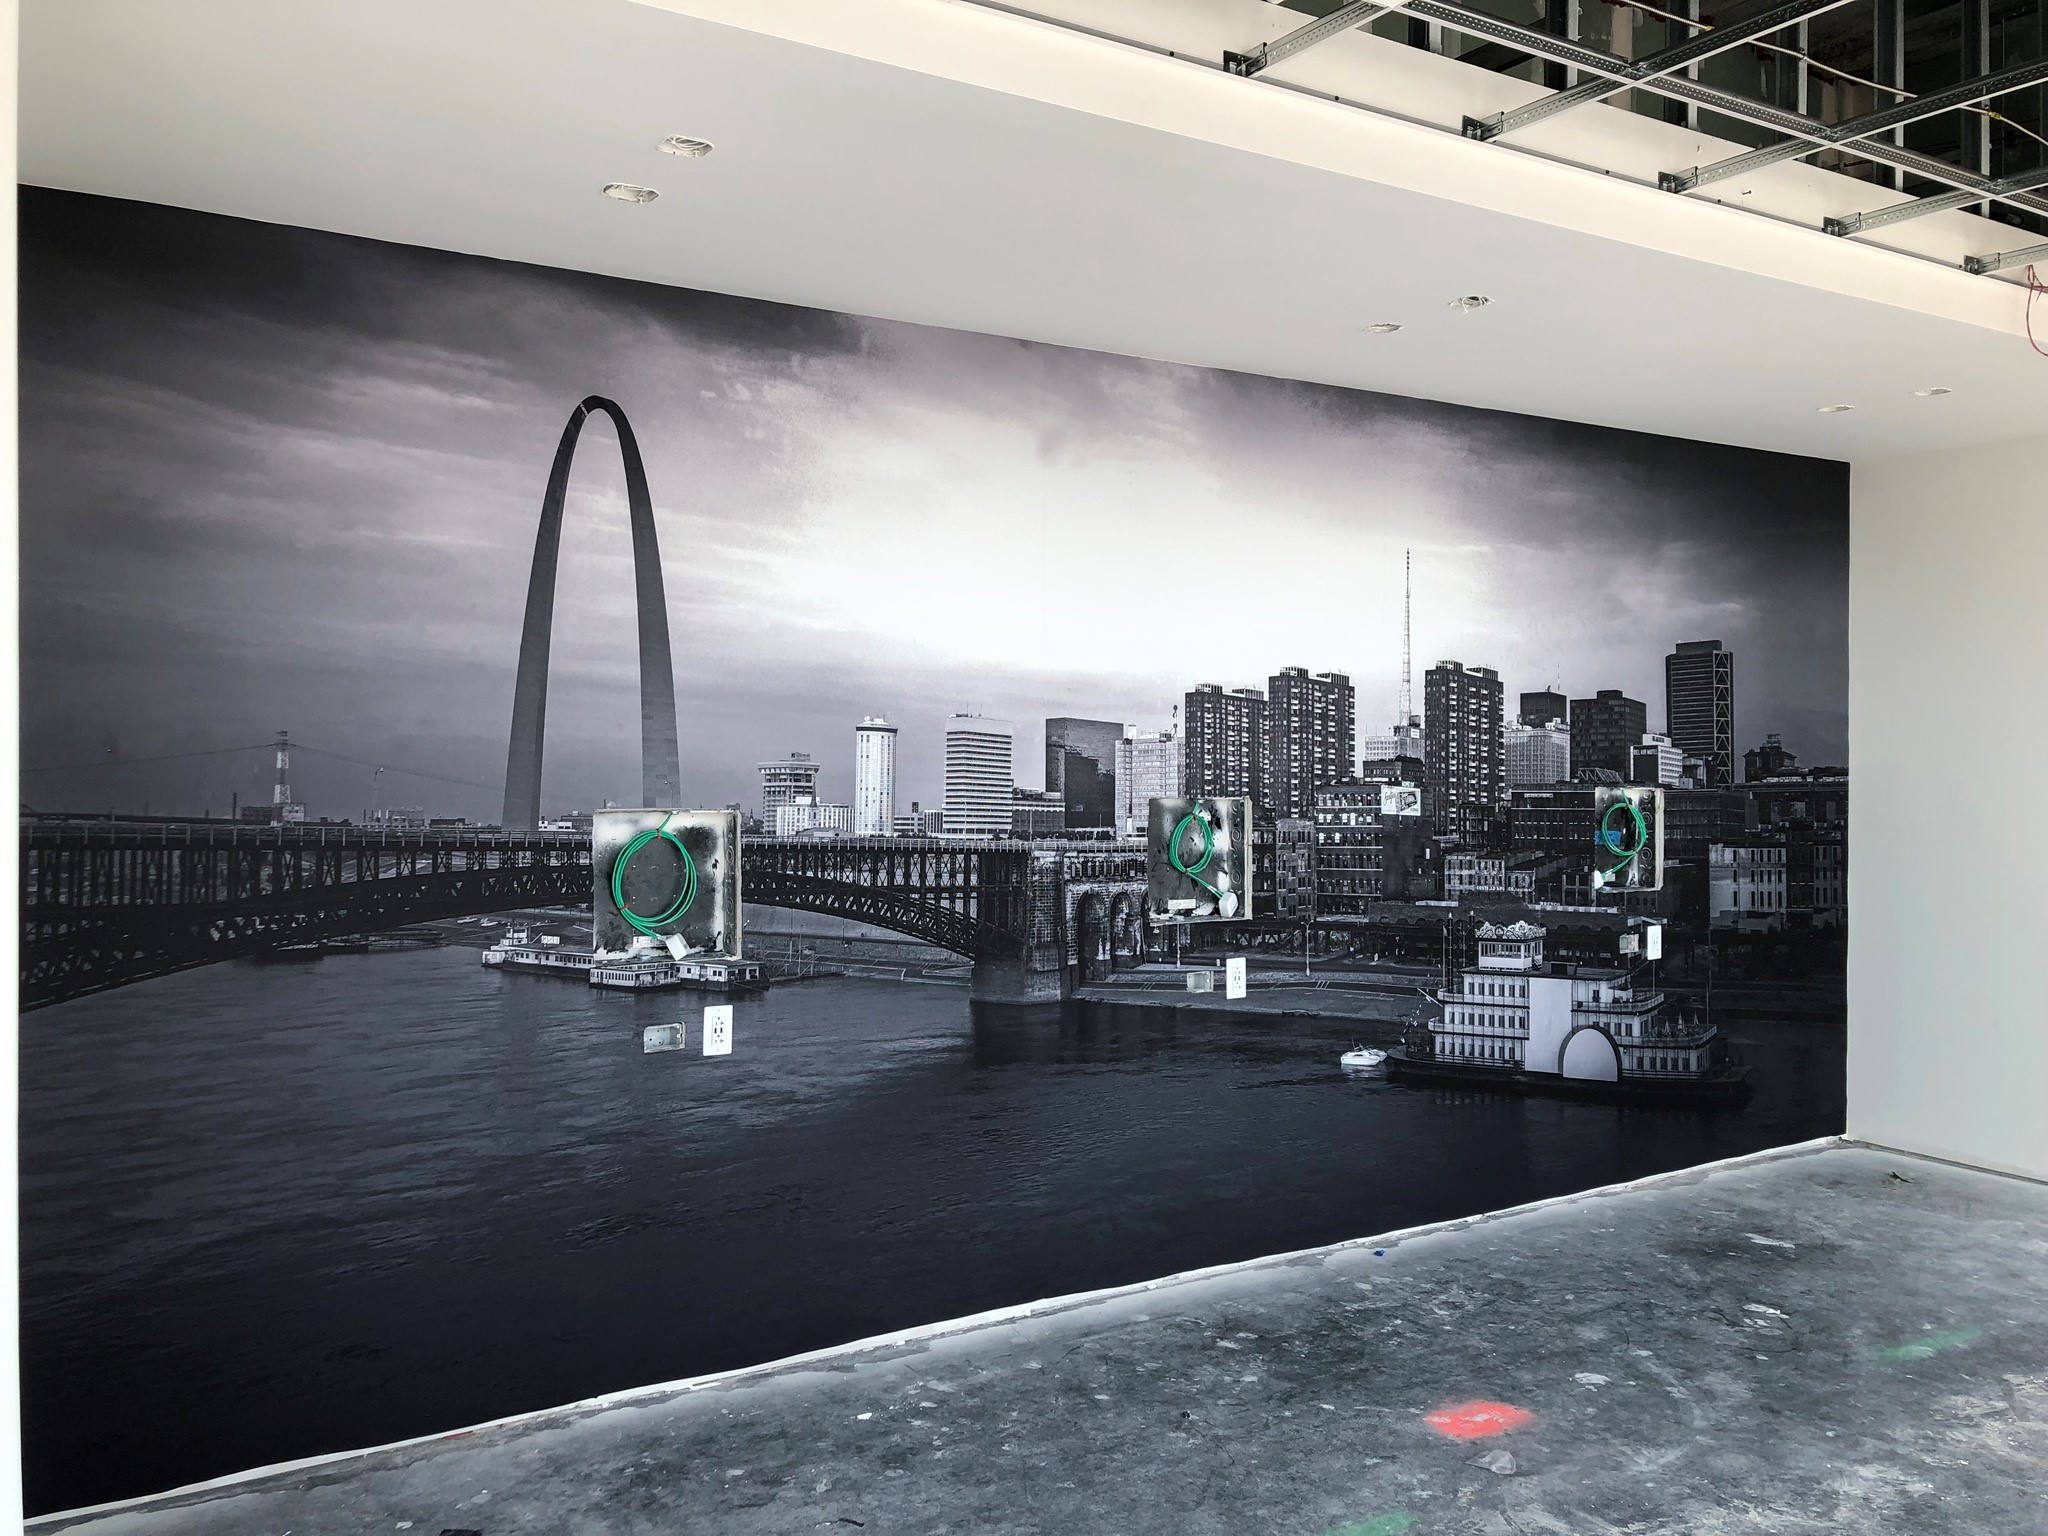 Wall Graphics, Murals, Wallpaper | Custom Signs & Signage | Advertising Agencies | St. Louis, MO